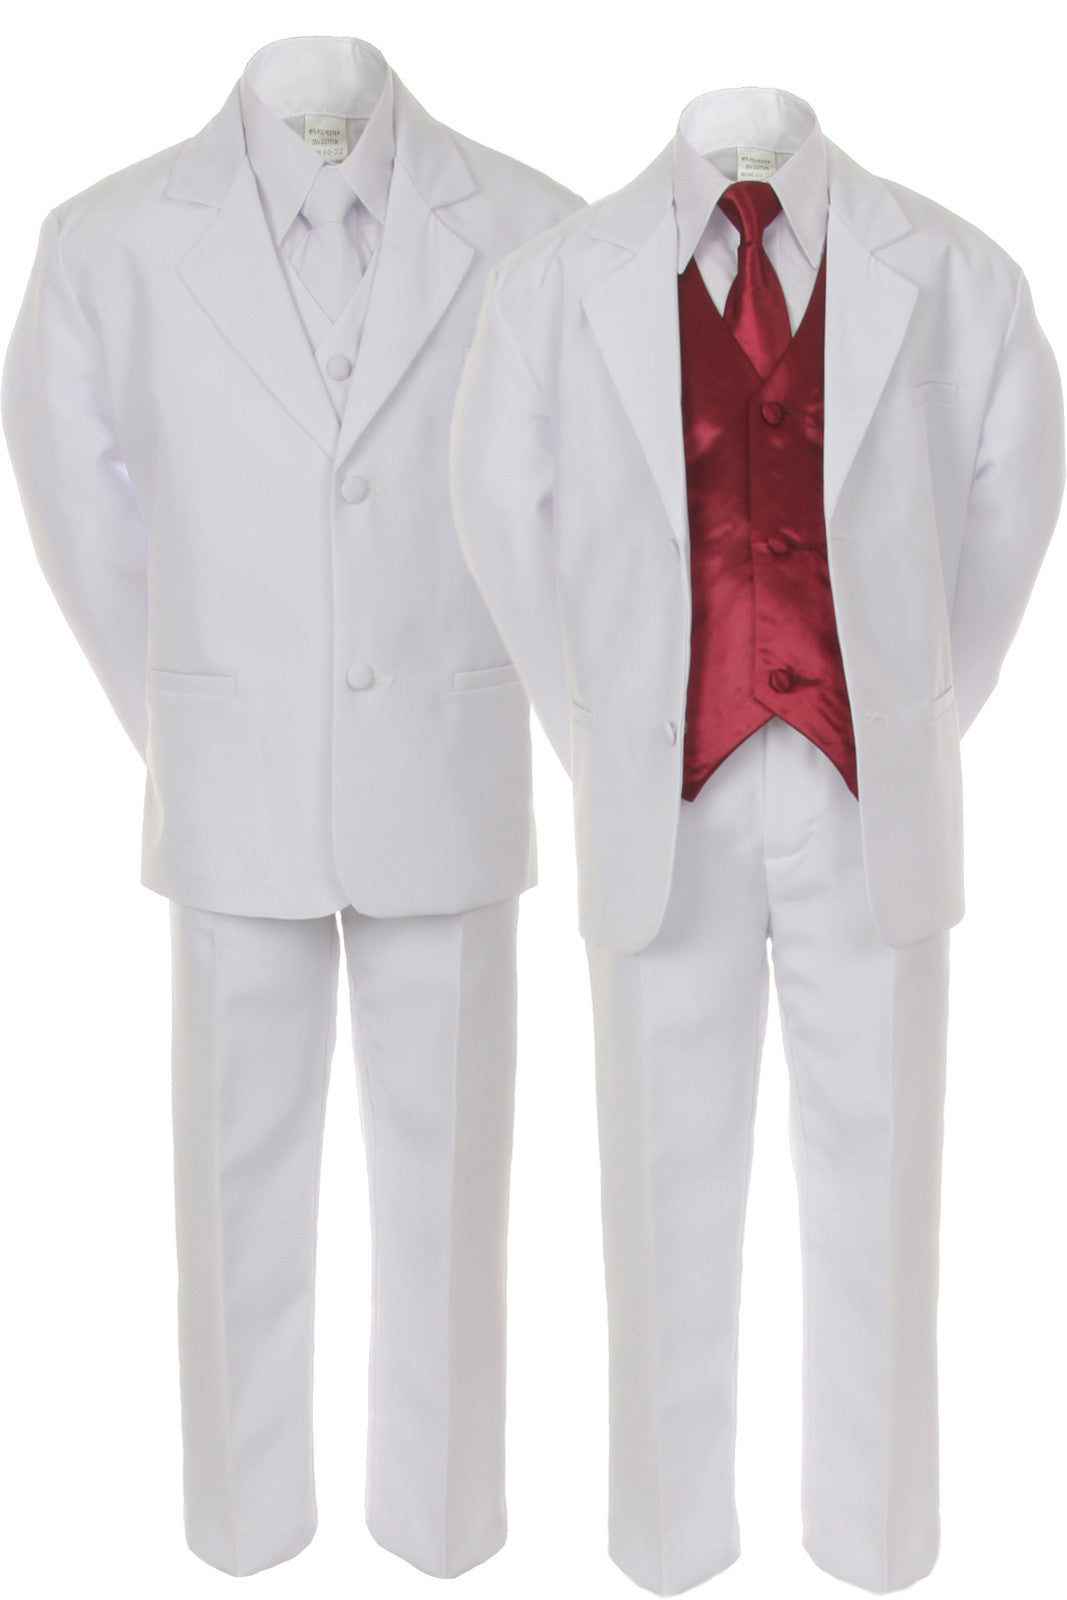 7pc Boy Kid Teen White Formal Wedding Party Suit Tuxedo with ...